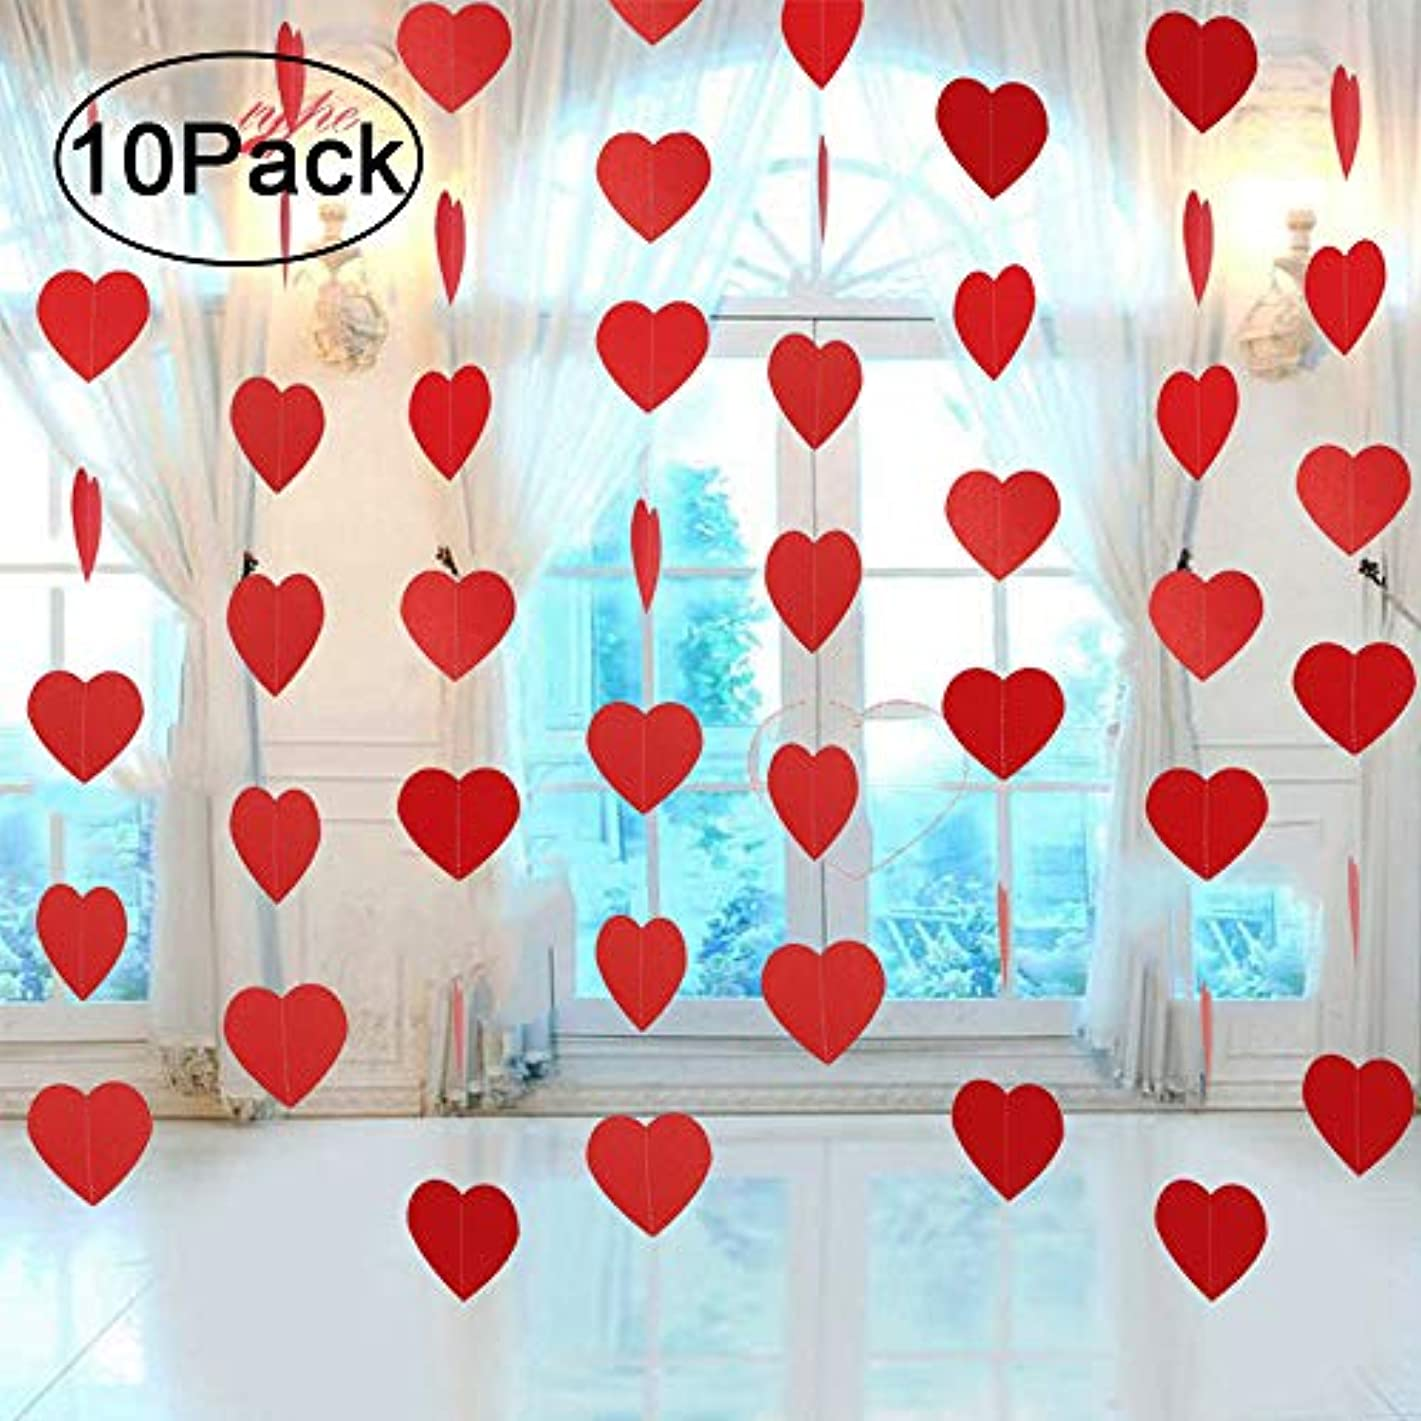 Ontop 10 Pack Valentine's Day Heart Hanging Decorations Garland Banner - Wedding Party Backdrop Decor Supplies …